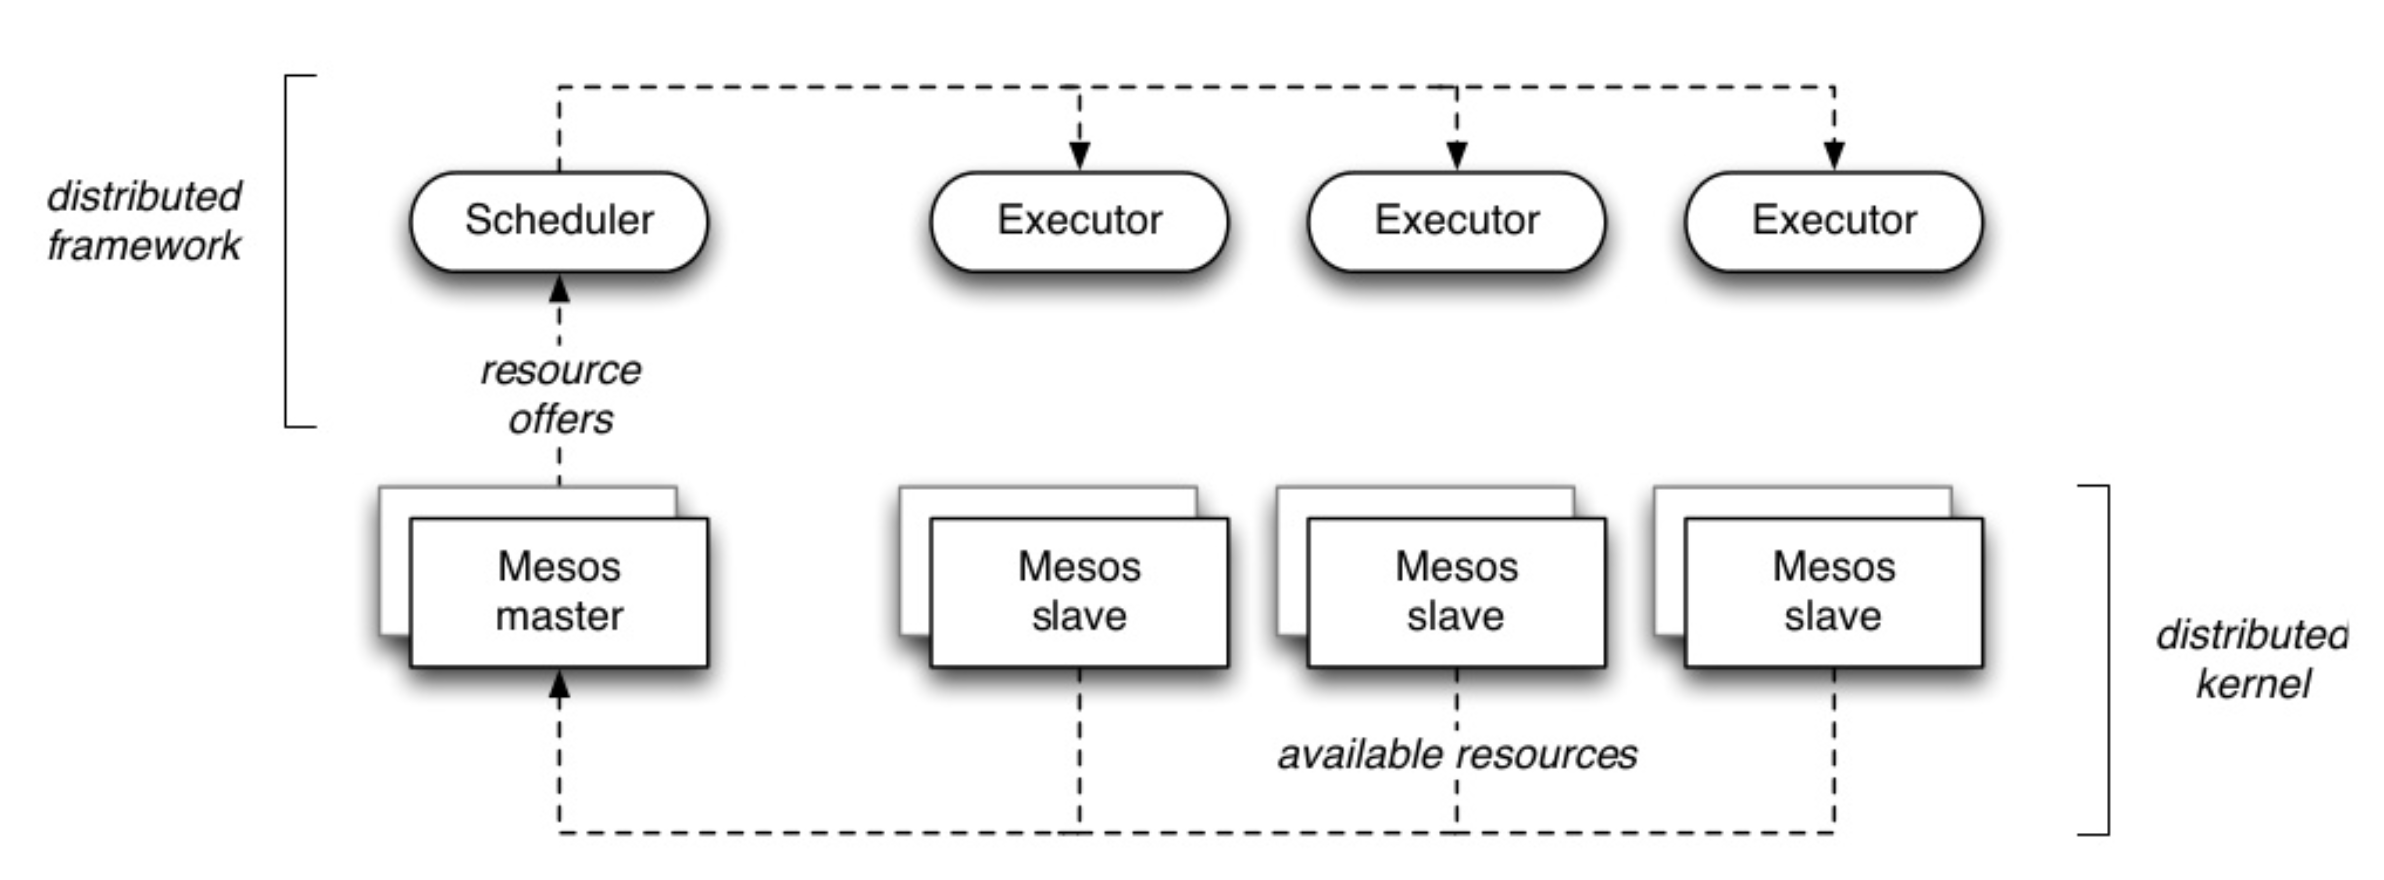 Fig. 4: Mesos Scheduler Interactions